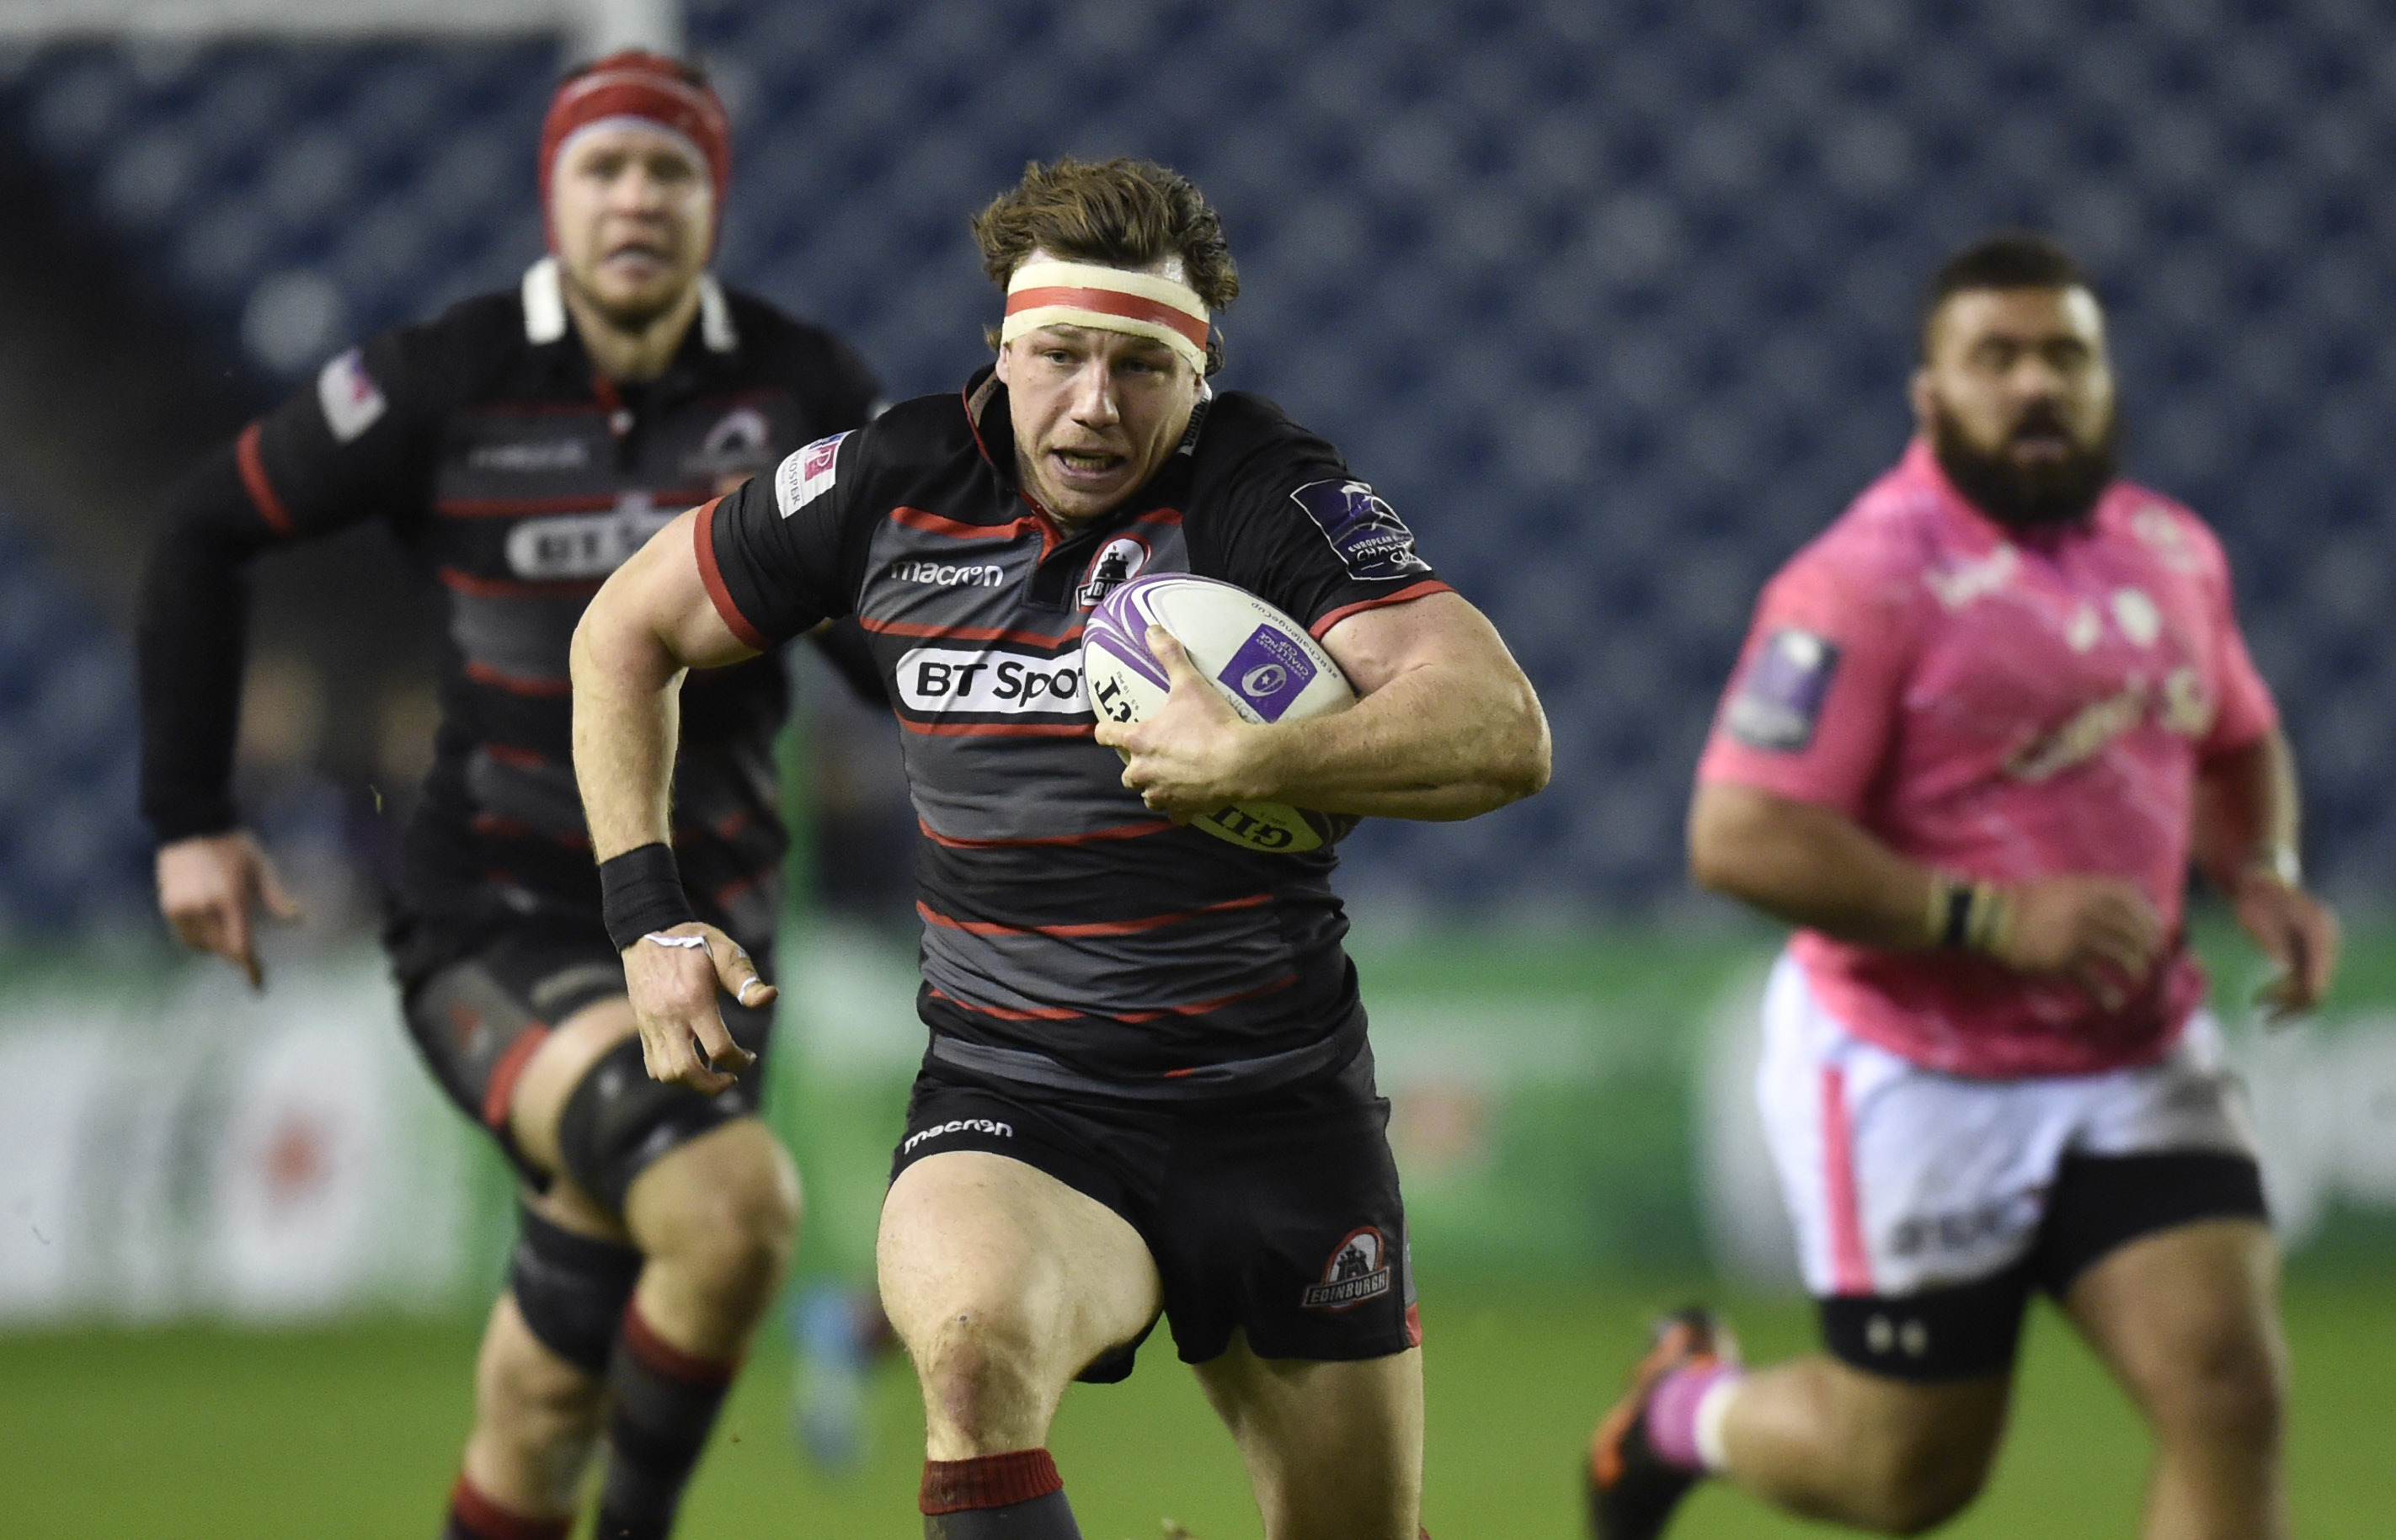 Hamish Watson bursts through for Edinburgh's first try in their thrilling win over Stade Francais.